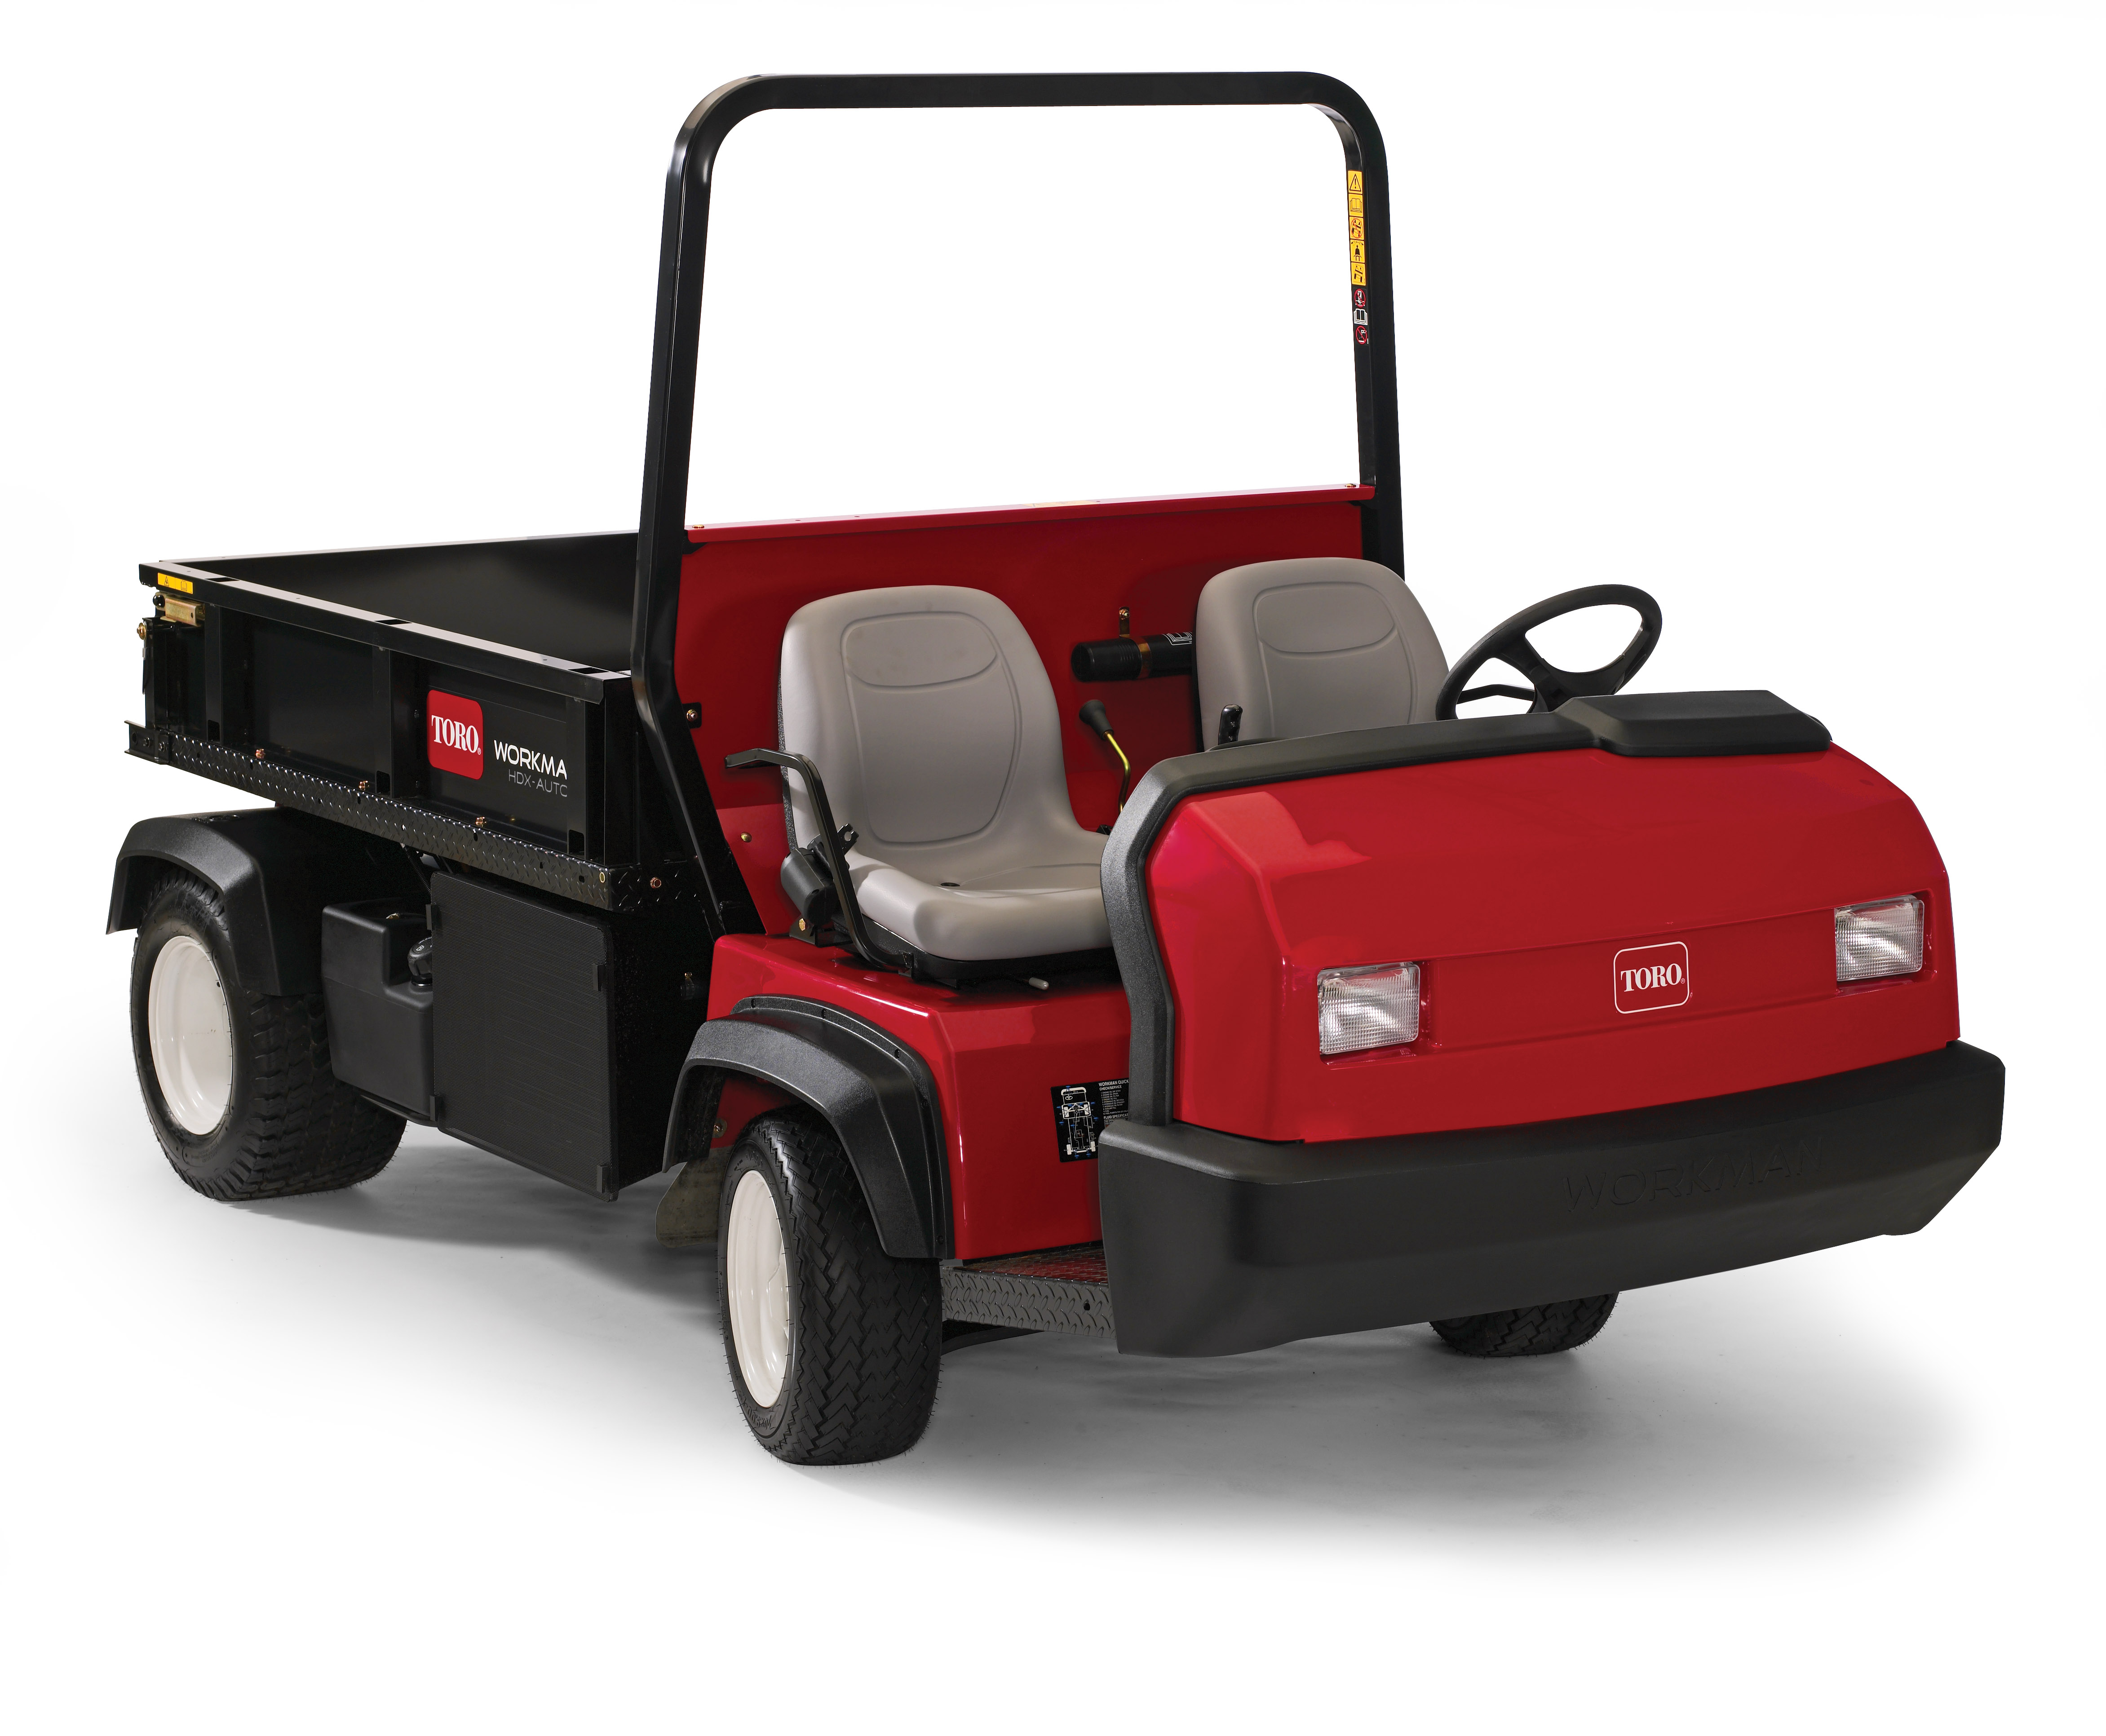 Us Auto Sales >> The New Toro Workman® HDX Auto, the Industry's First Heavy ...